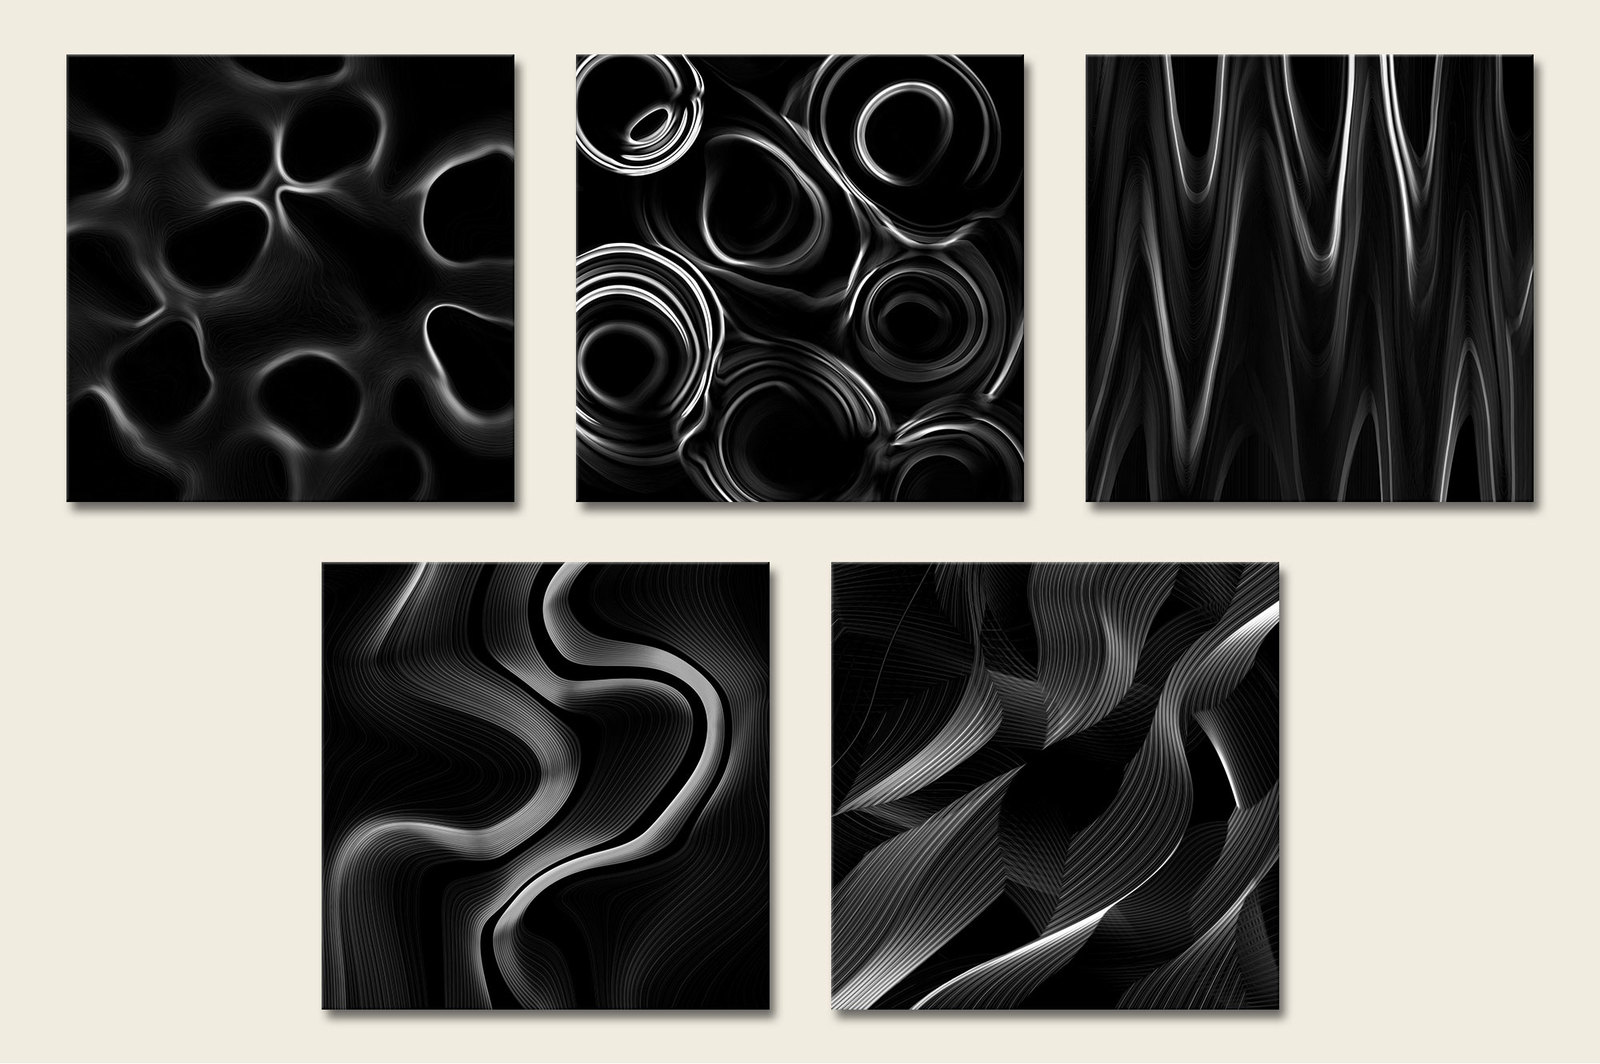 Neowave: Sweeping Abstract Textures